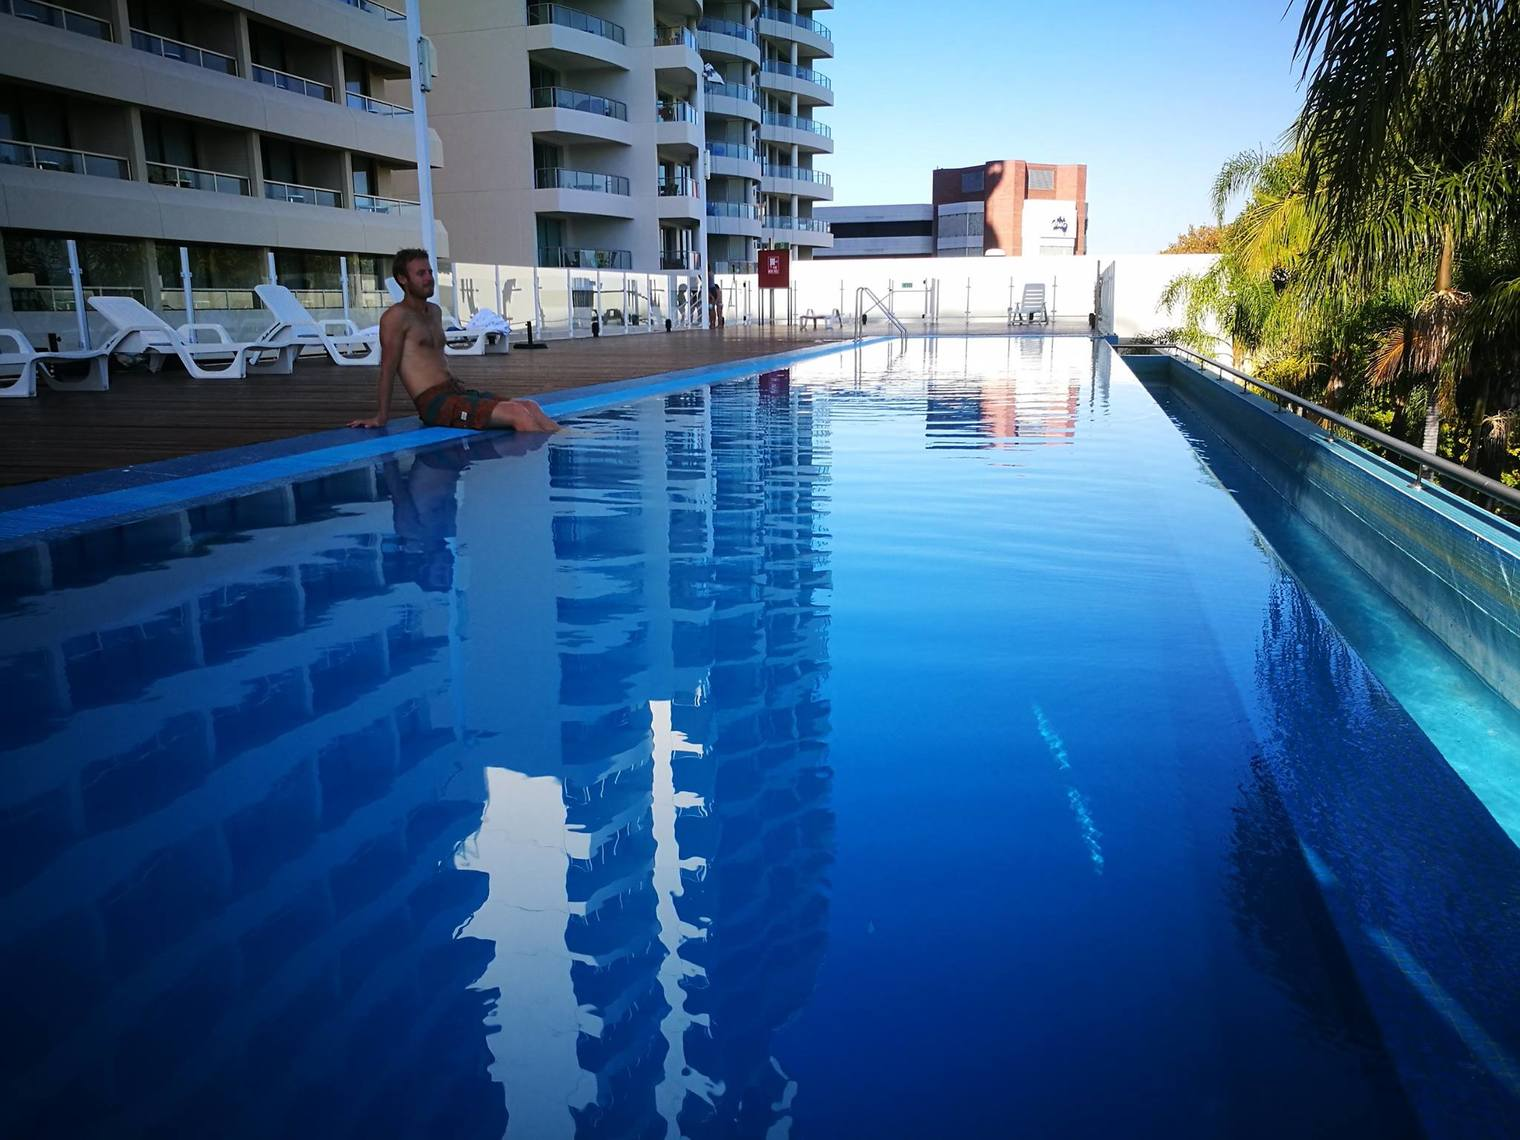 Crowne Plaza Perth A Wonderful Hotel Experience Enhanced by an Expected Reunion Outdoor Pool 2